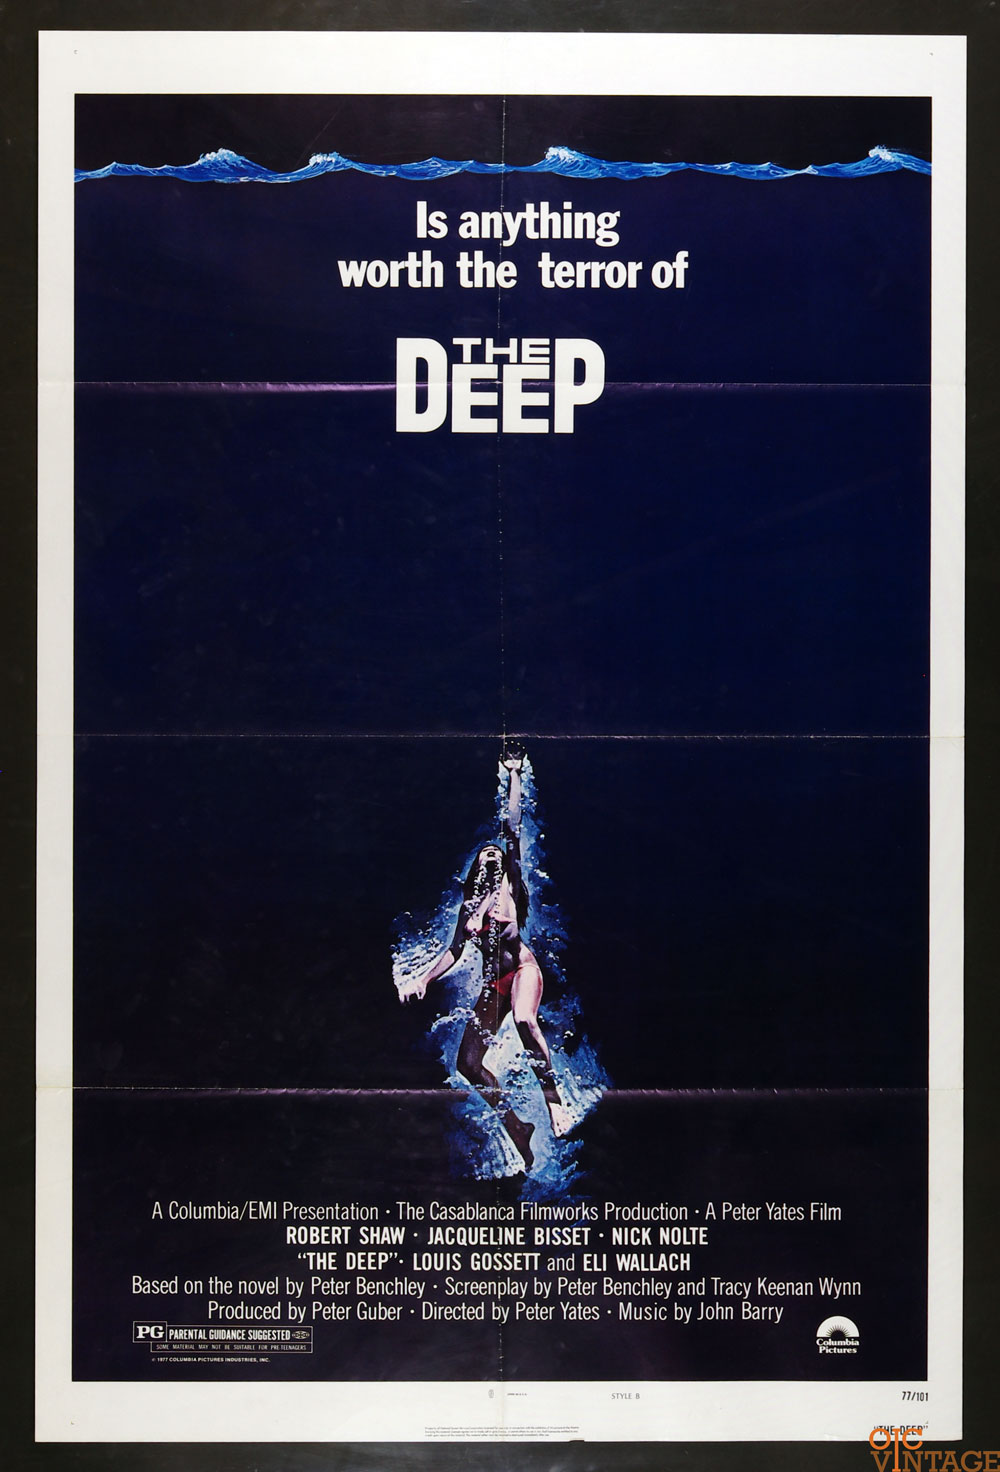 The Deep Movie Poster 1977 Jacqueline Bisset Nick Nolte 27x41 1 Sheet